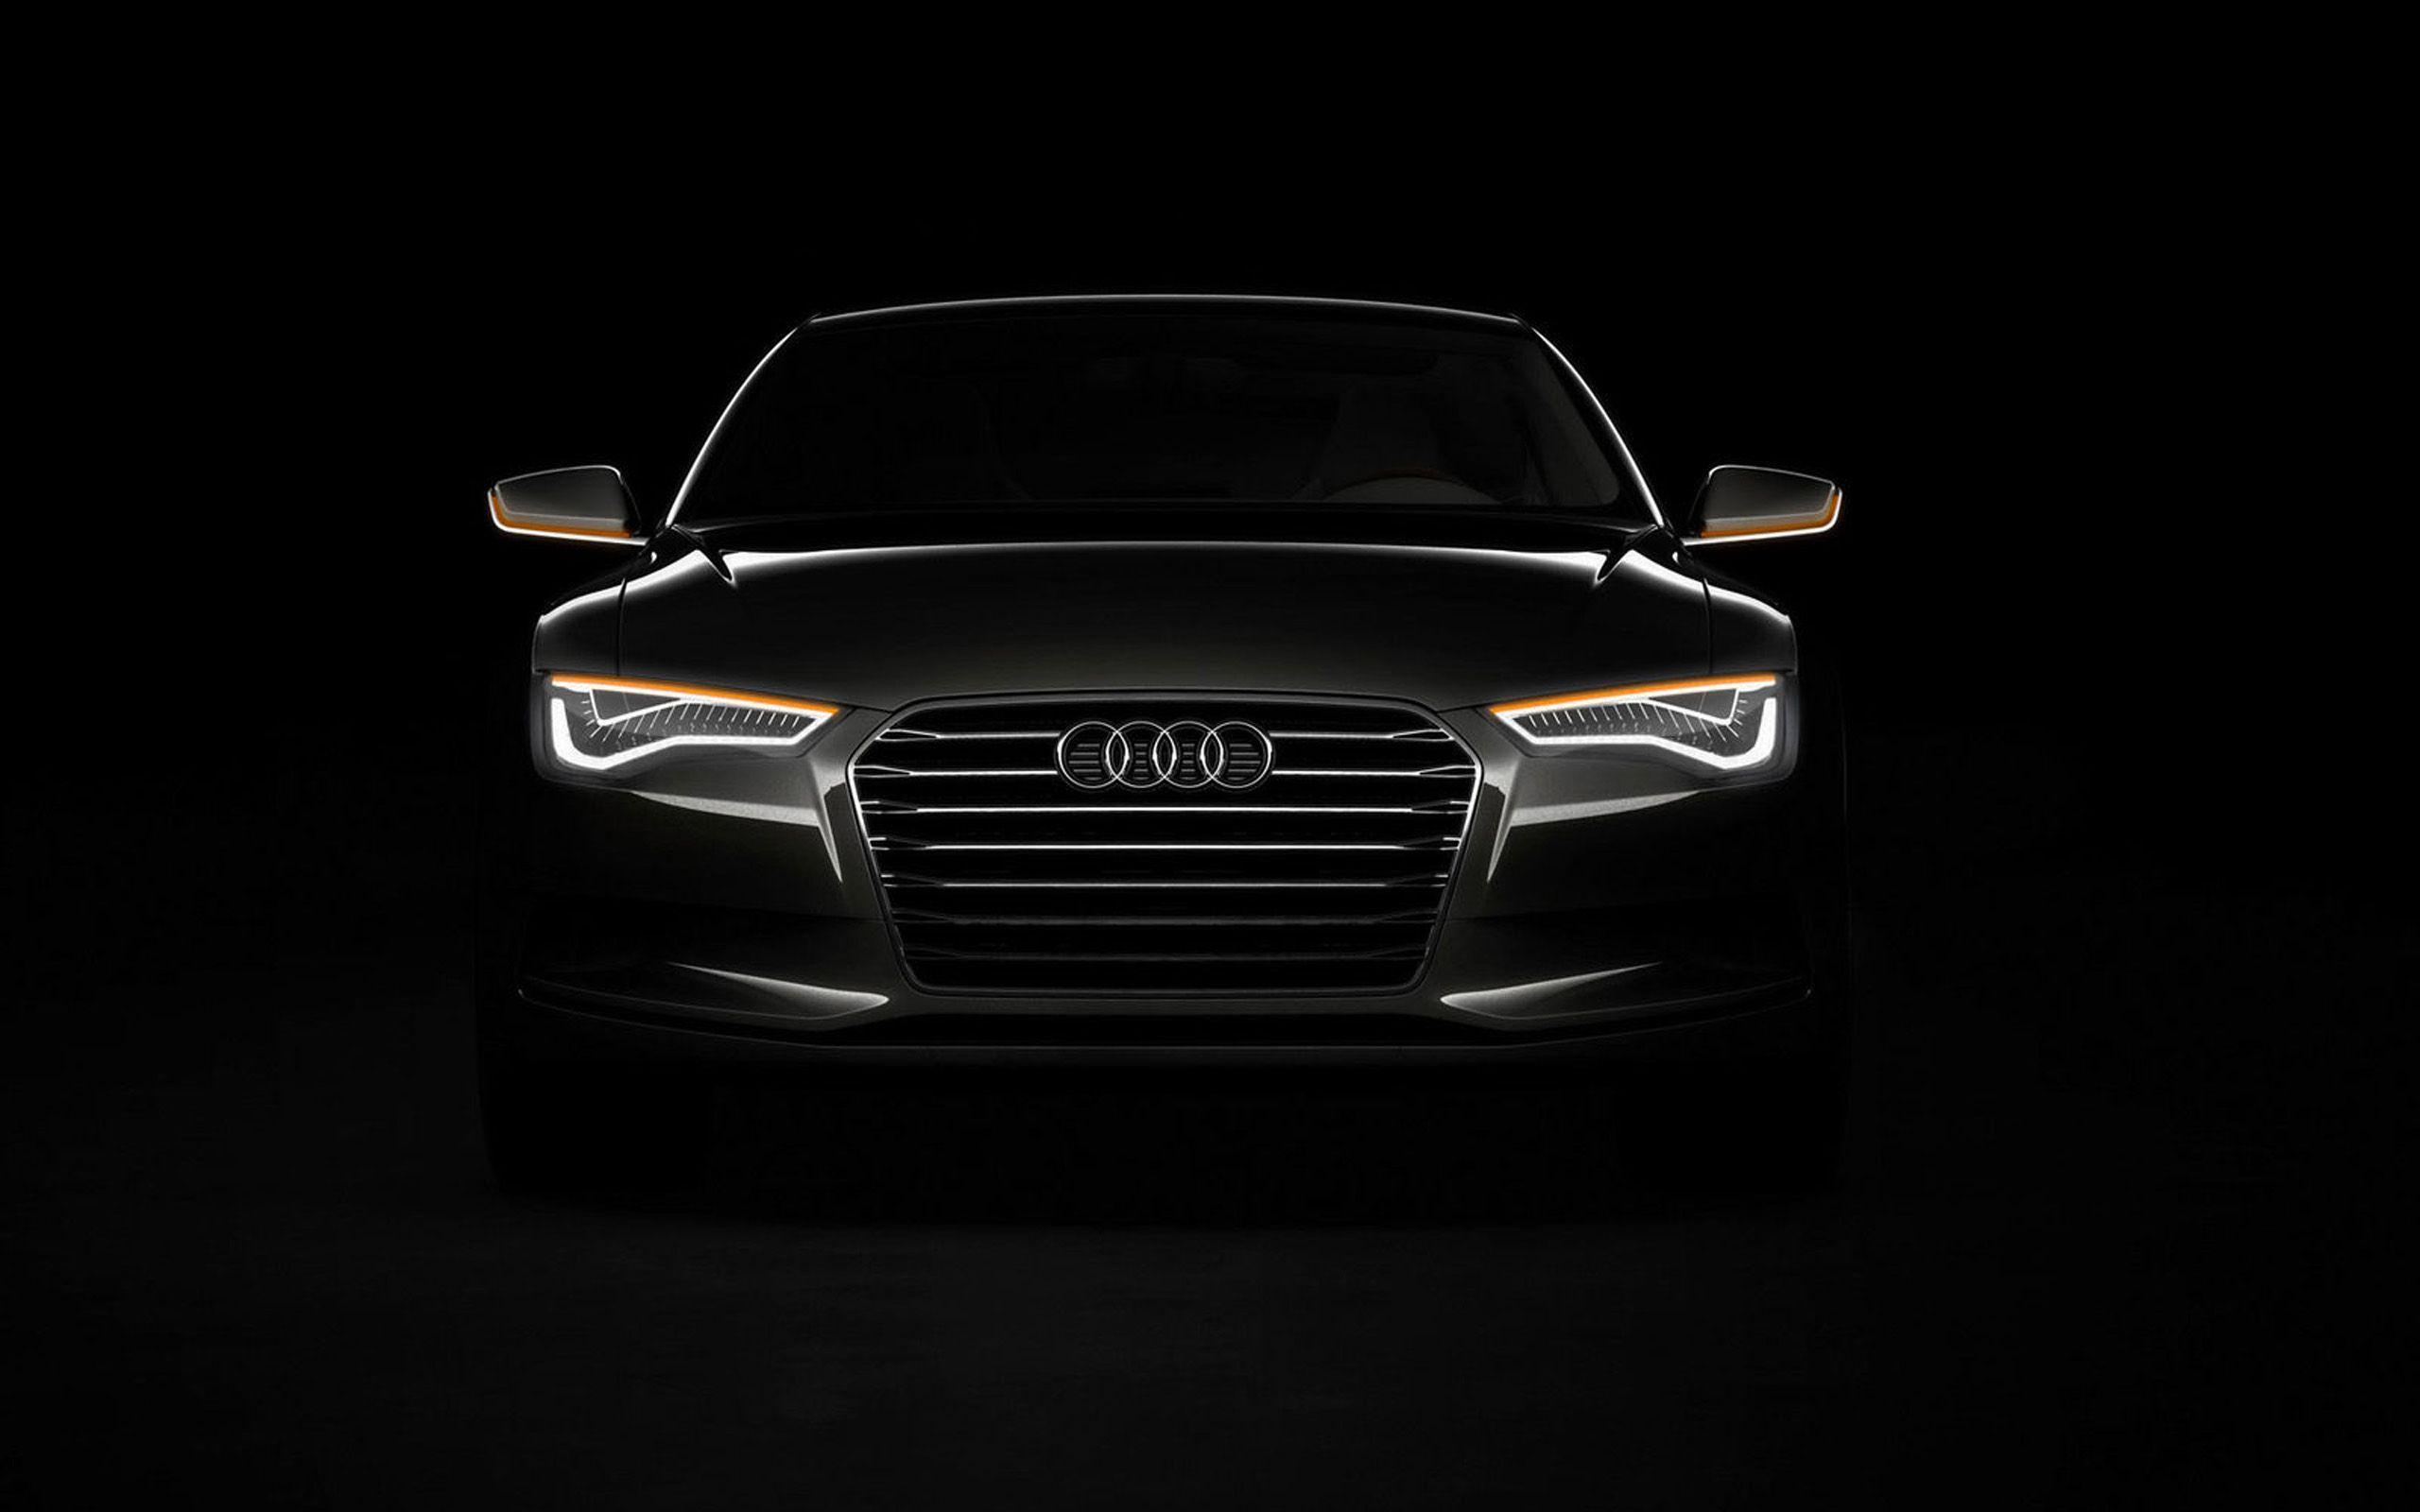 Audi Wallpapers HD - HD Images, HD Pictures, Backgrounds, Desktop ...